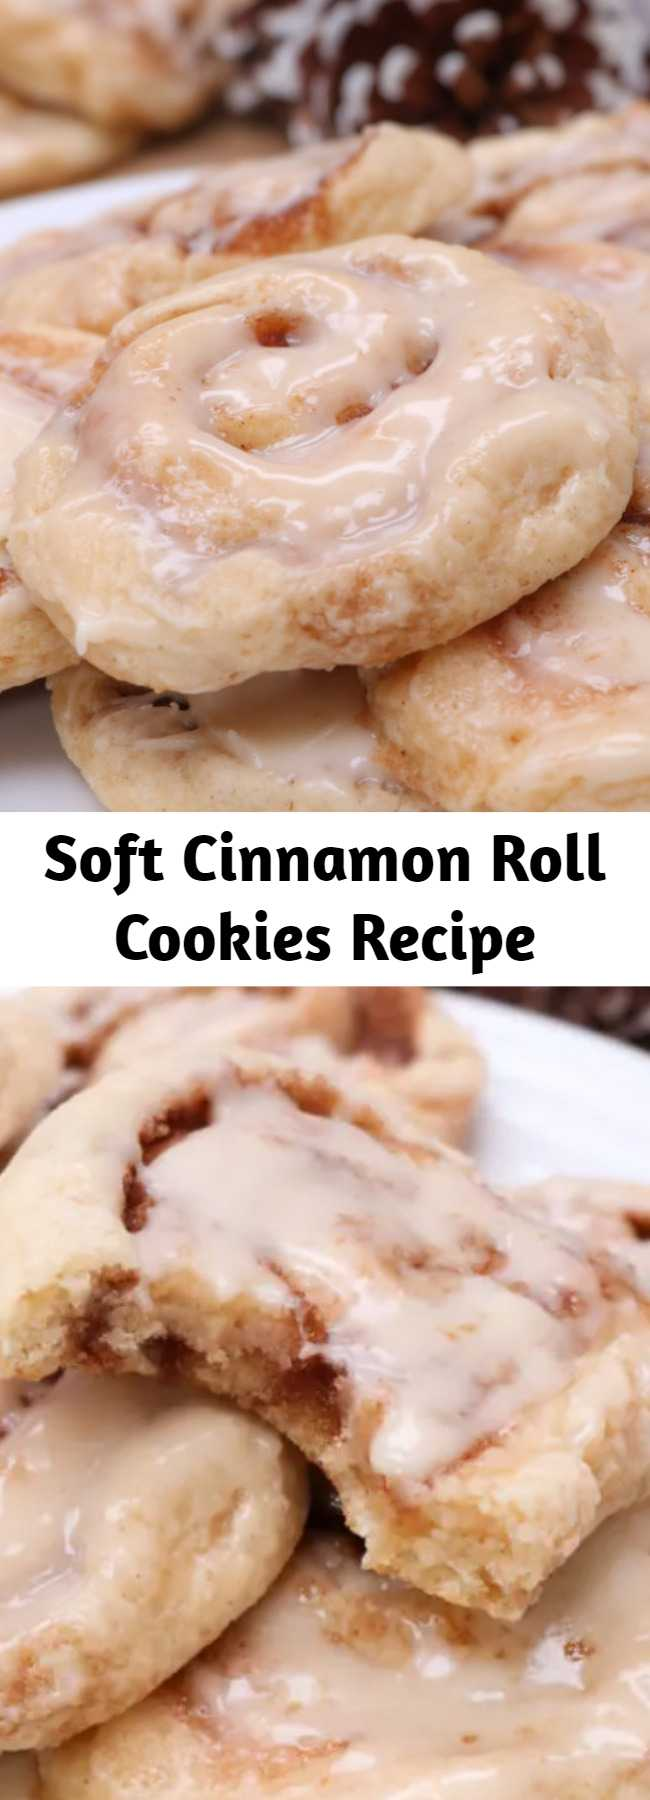 Soft Cinnamon Roll Cookies Recipe - A soft sugar cookie reminiscent of a cinnamon roll! Glazed with cream cheese glaze with swirls of cinnamon sugar. #cookies #cinnamonroll #soft #fluffy #desserts #homemade #chewy